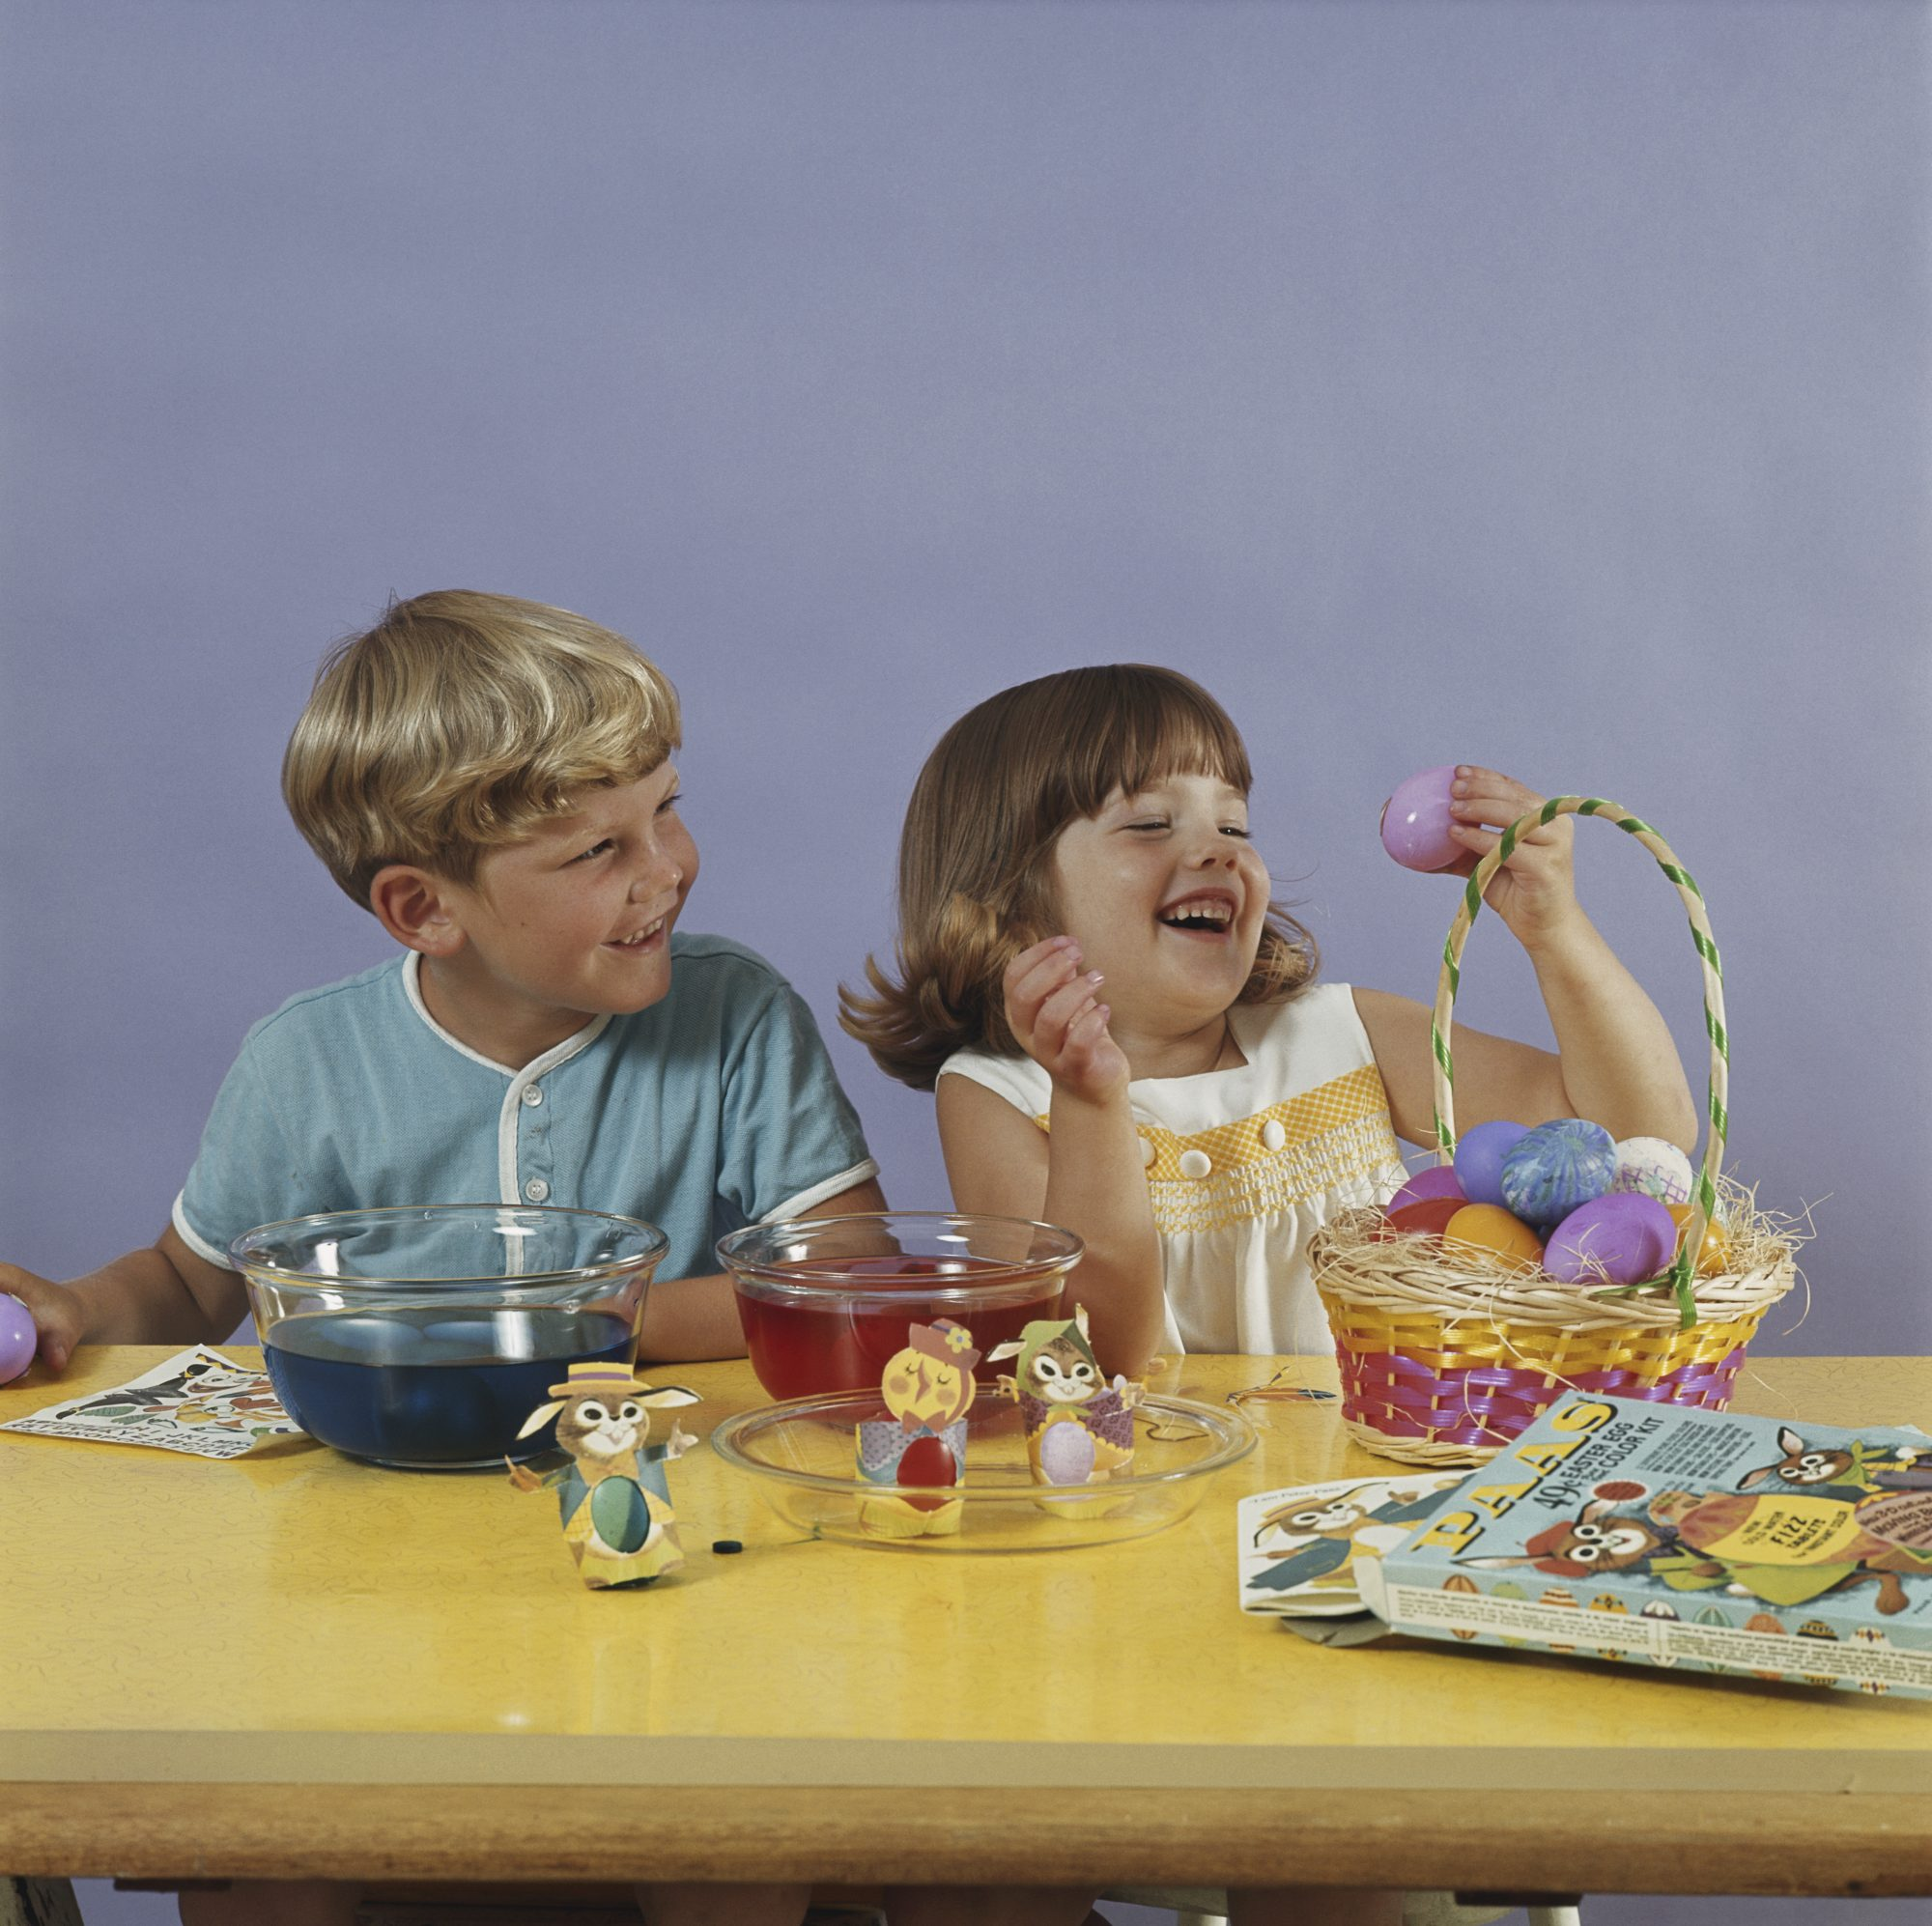 Children sitting at table with easter eggs smiling